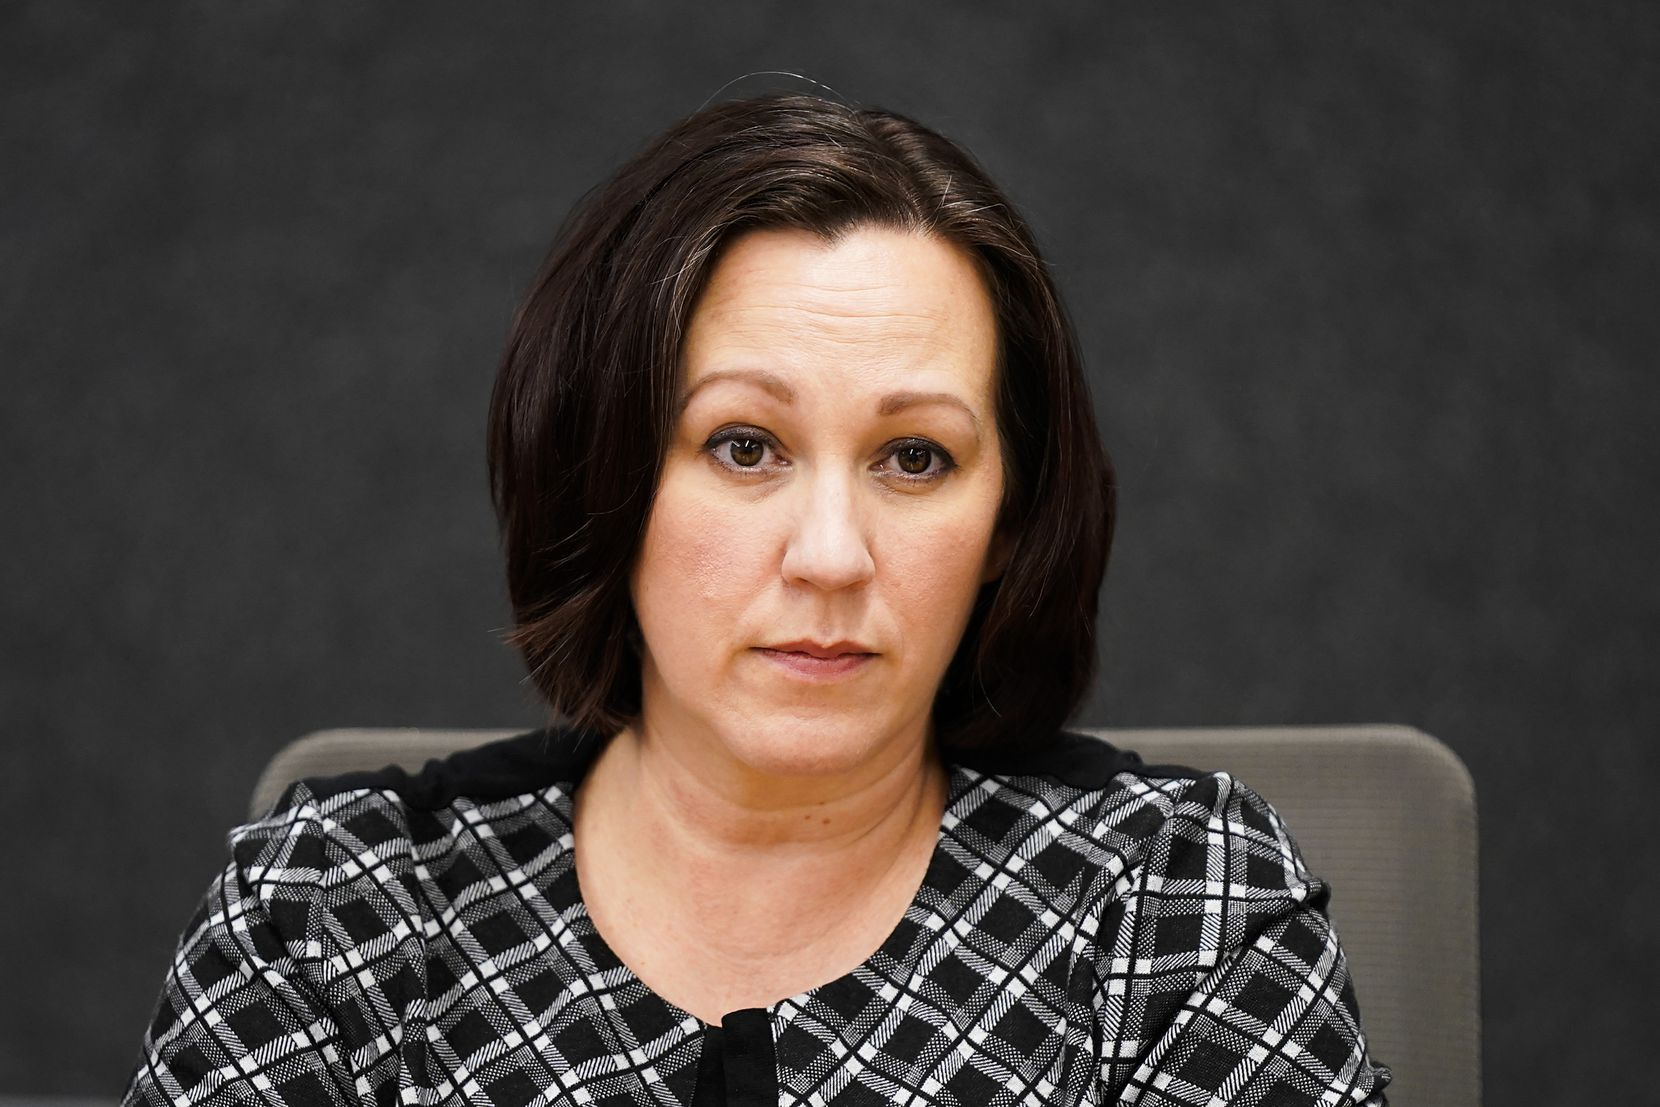 Democratic senate candidate MJ Hegar has been the top fundraiser to date among the candidates vying to take on Republican Sen. John Cornyn in the general election. (Smiley N. Pool/The Dallas Morning News)